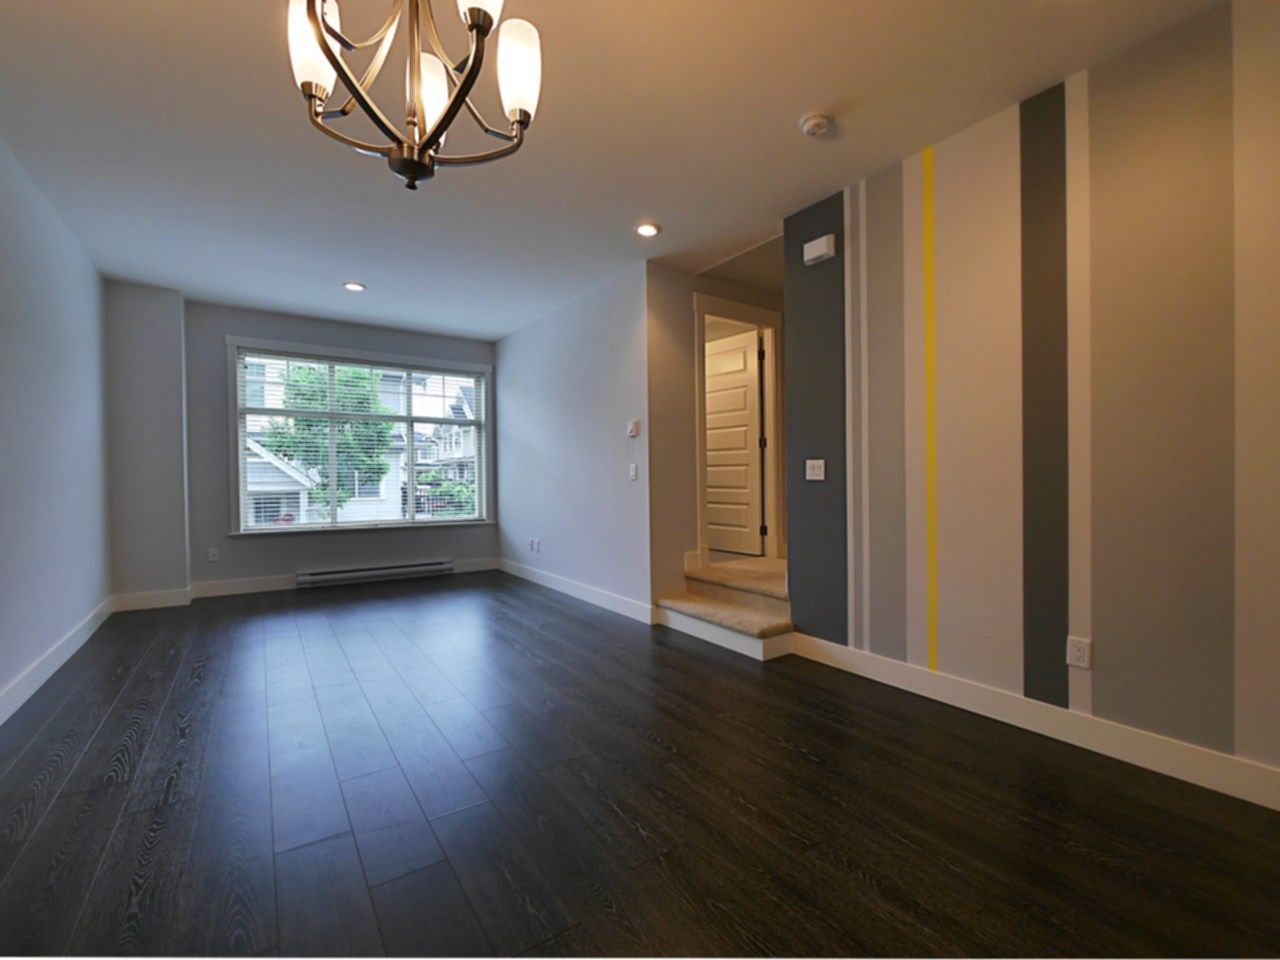 """Photo 5: Photos: 36 19525 73 Avenue in Surrey: Clayton Townhouse for sale in """"Uptown Clayton"""" (Cloverdale)  : MLS®# R2069814"""